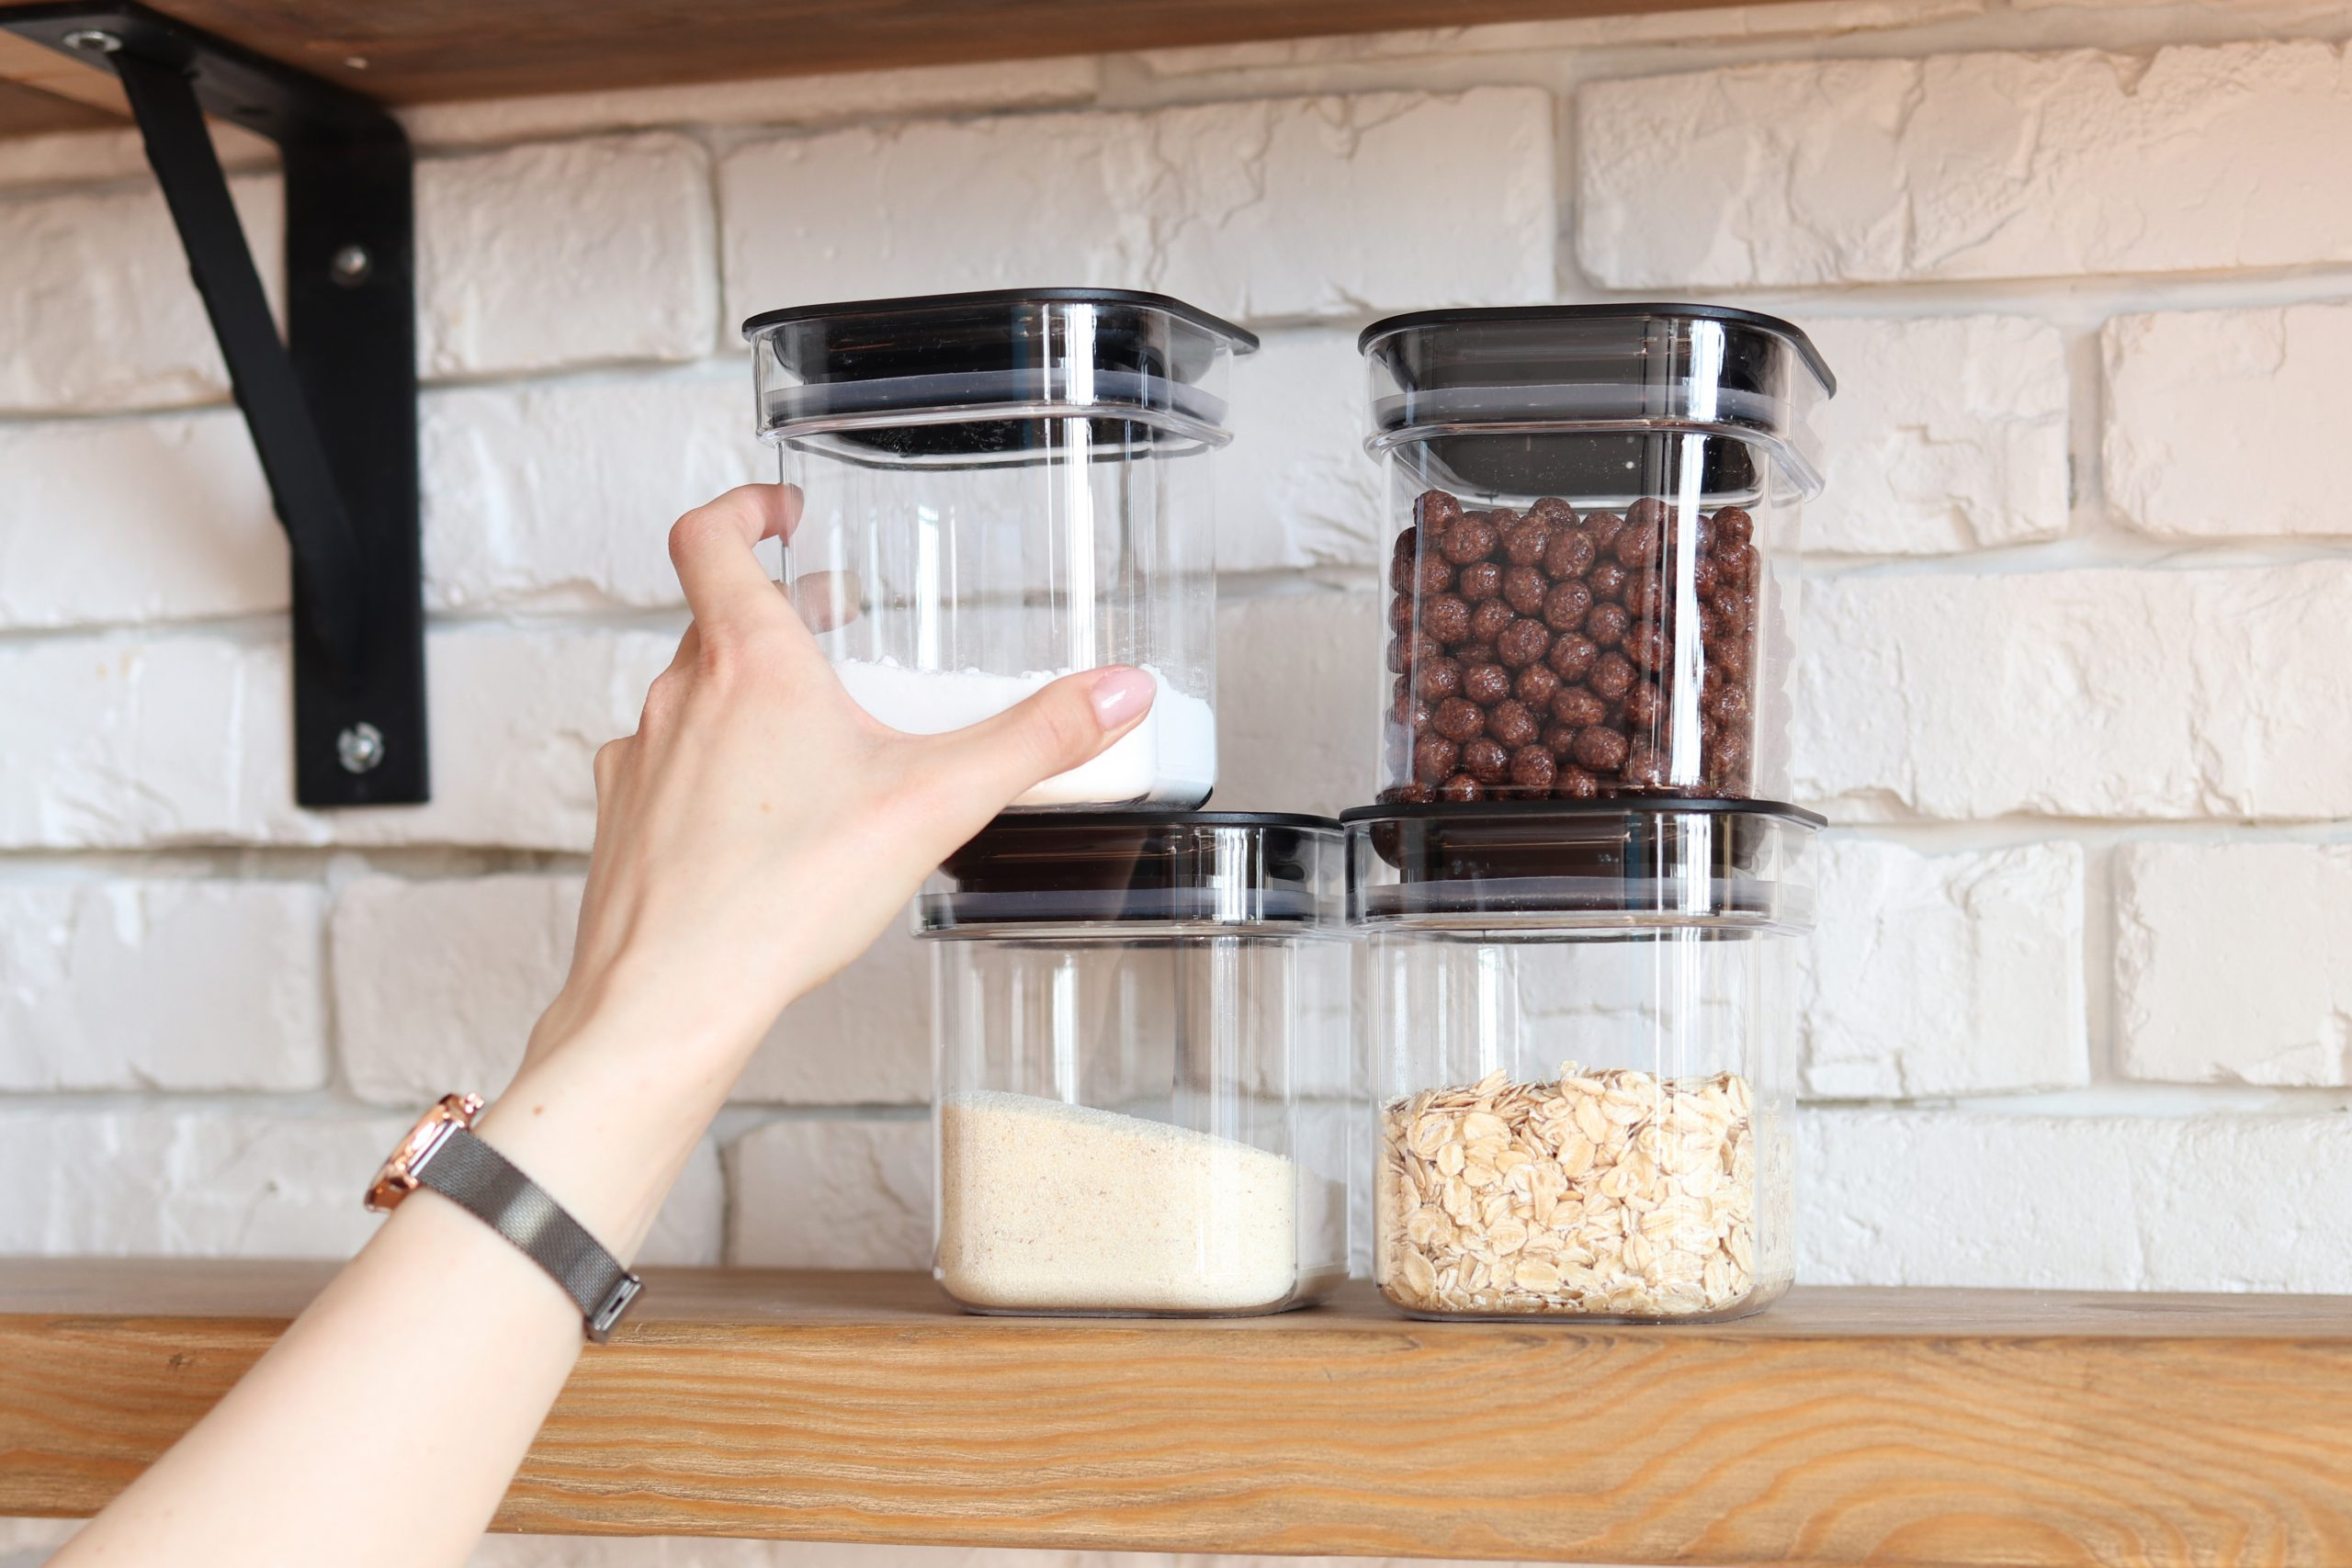 A hand reaching up to grab a small storage container off a shelf. There are four containers stacked on the shelf.